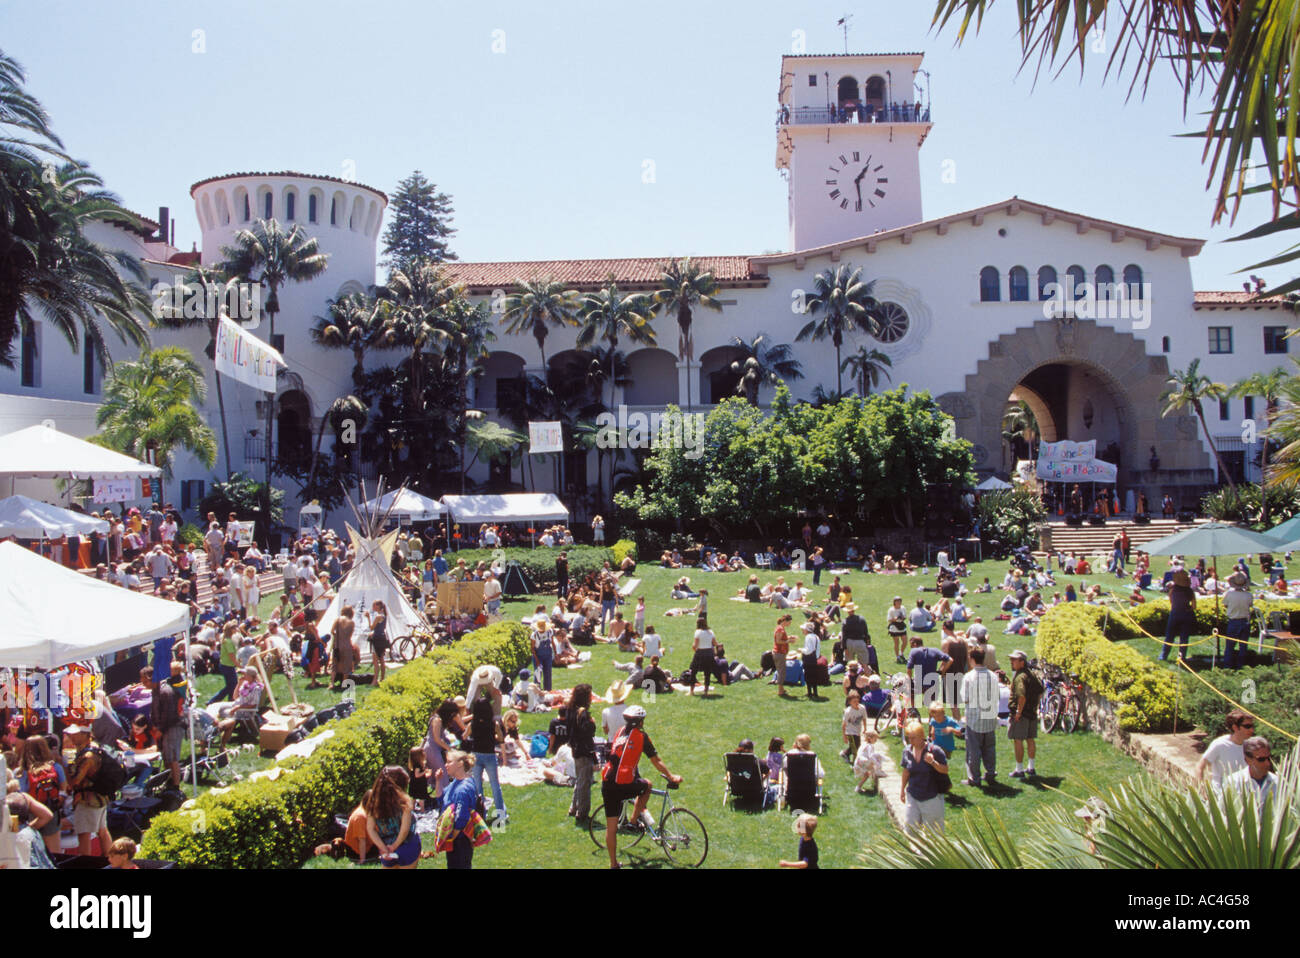 Earth Day Festival at the Court House Gardens, Santa Barbara Courthouse, Santa Barbara, California - Stock Image